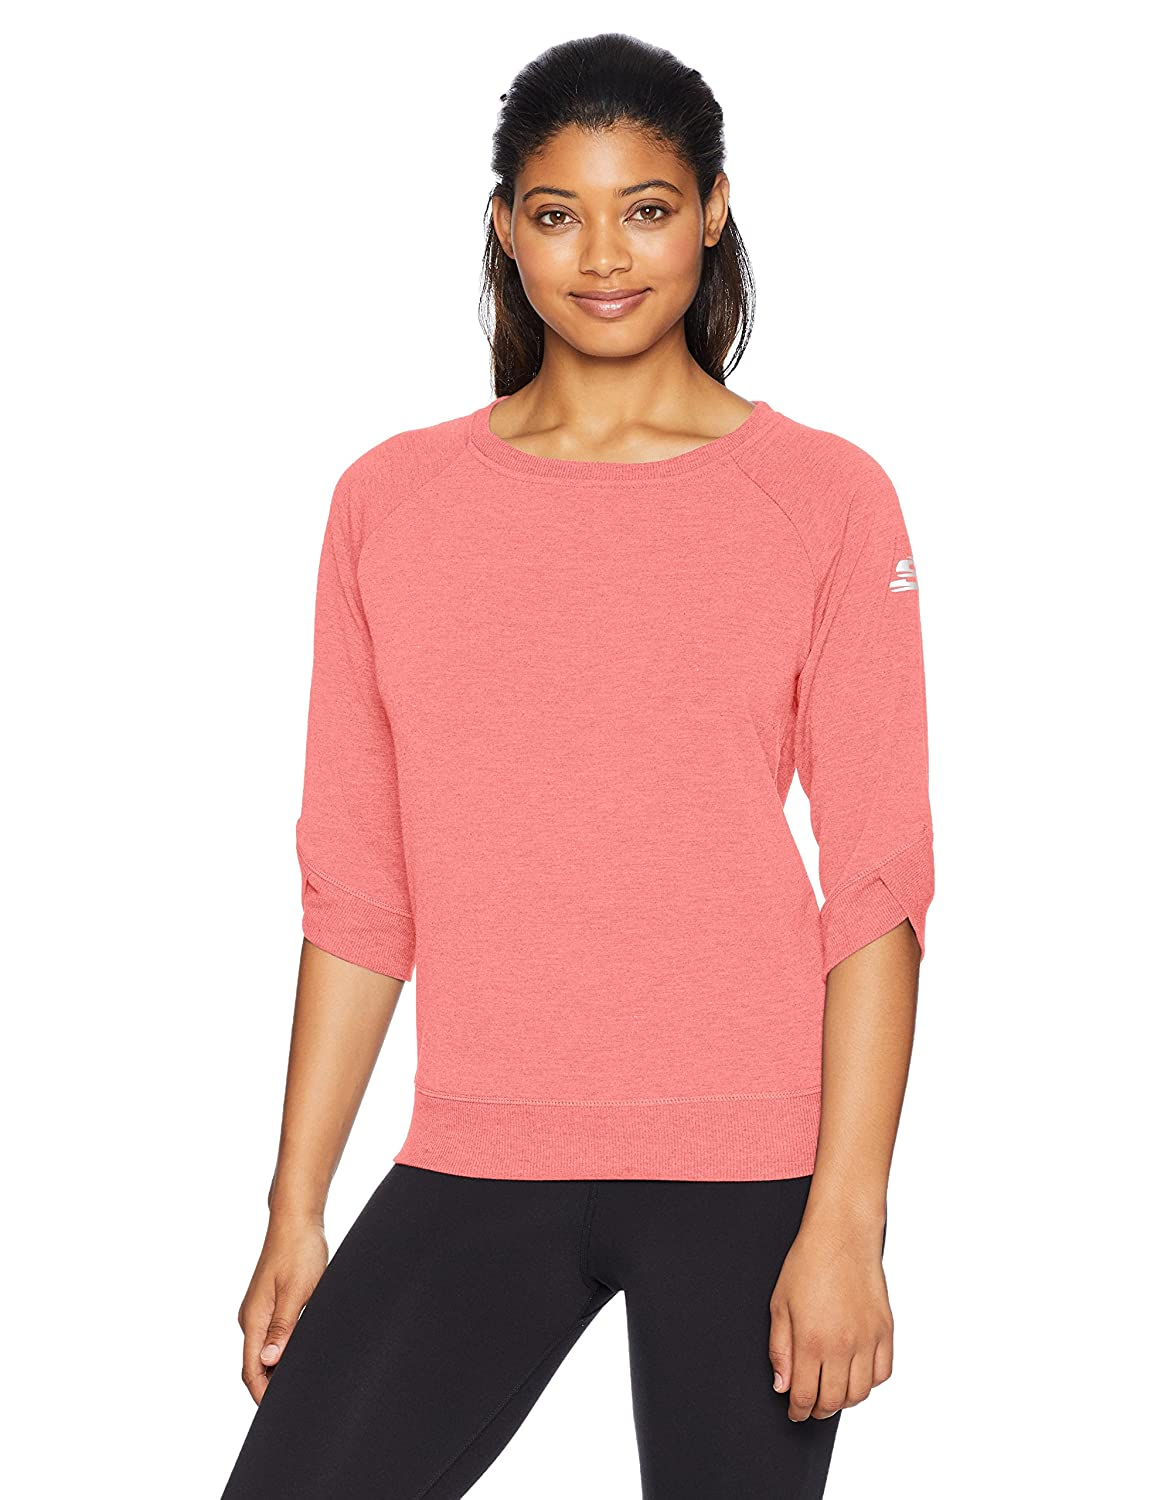 Skechers Women's Relaxed Comfy Pullover Skechers Active 1712